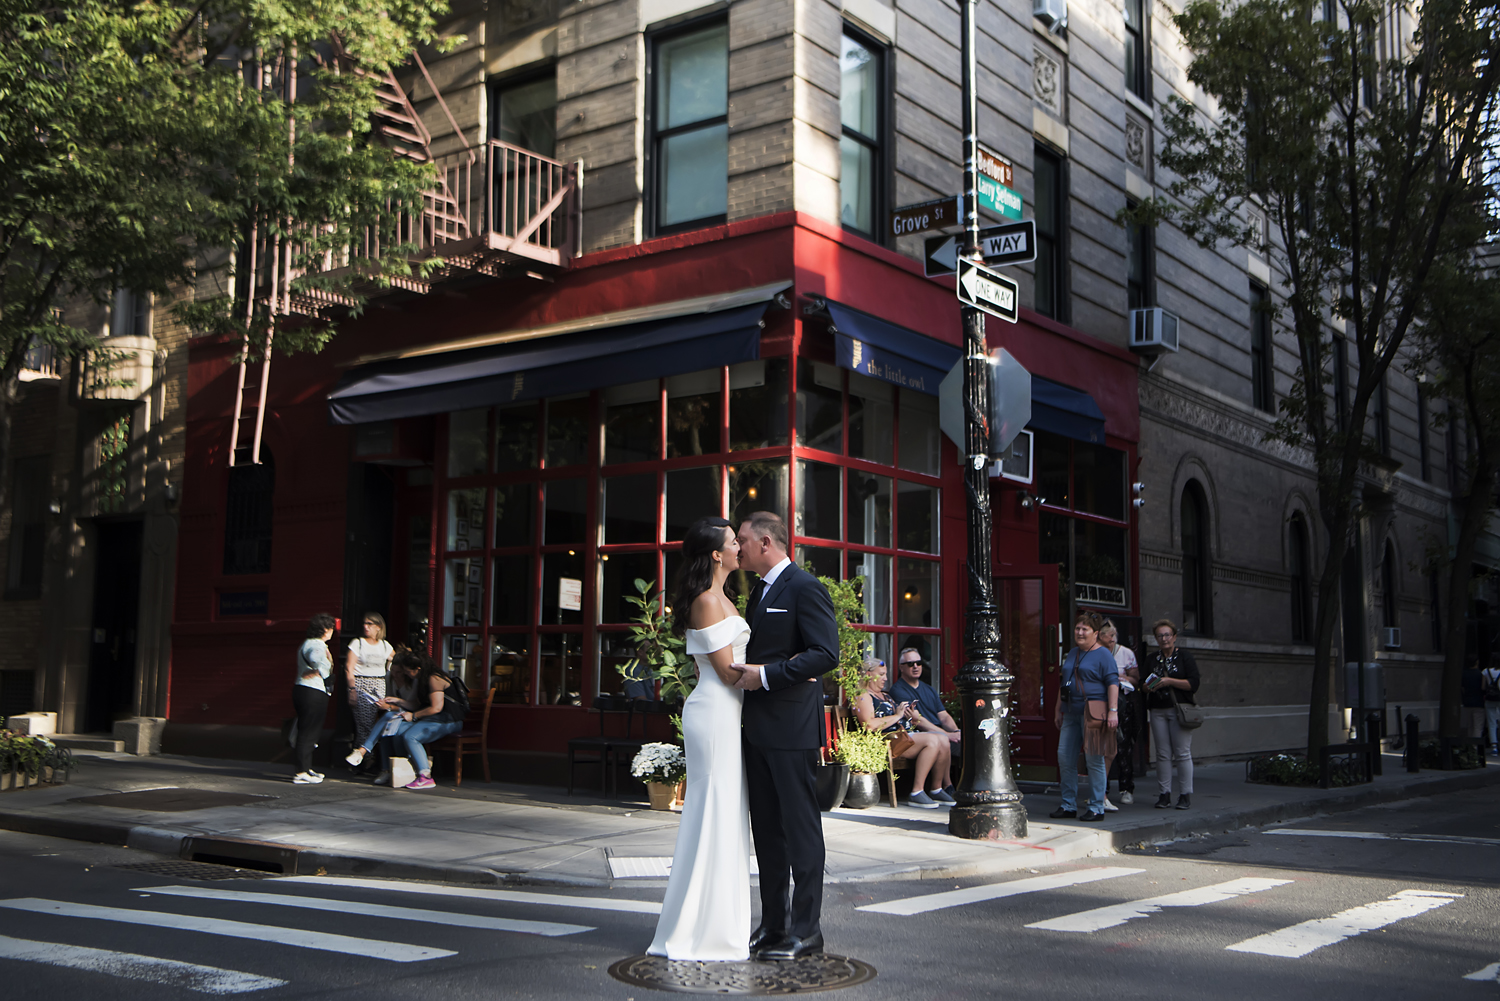 bride and groom in NYC on their wedding day. NYC wedding photographers